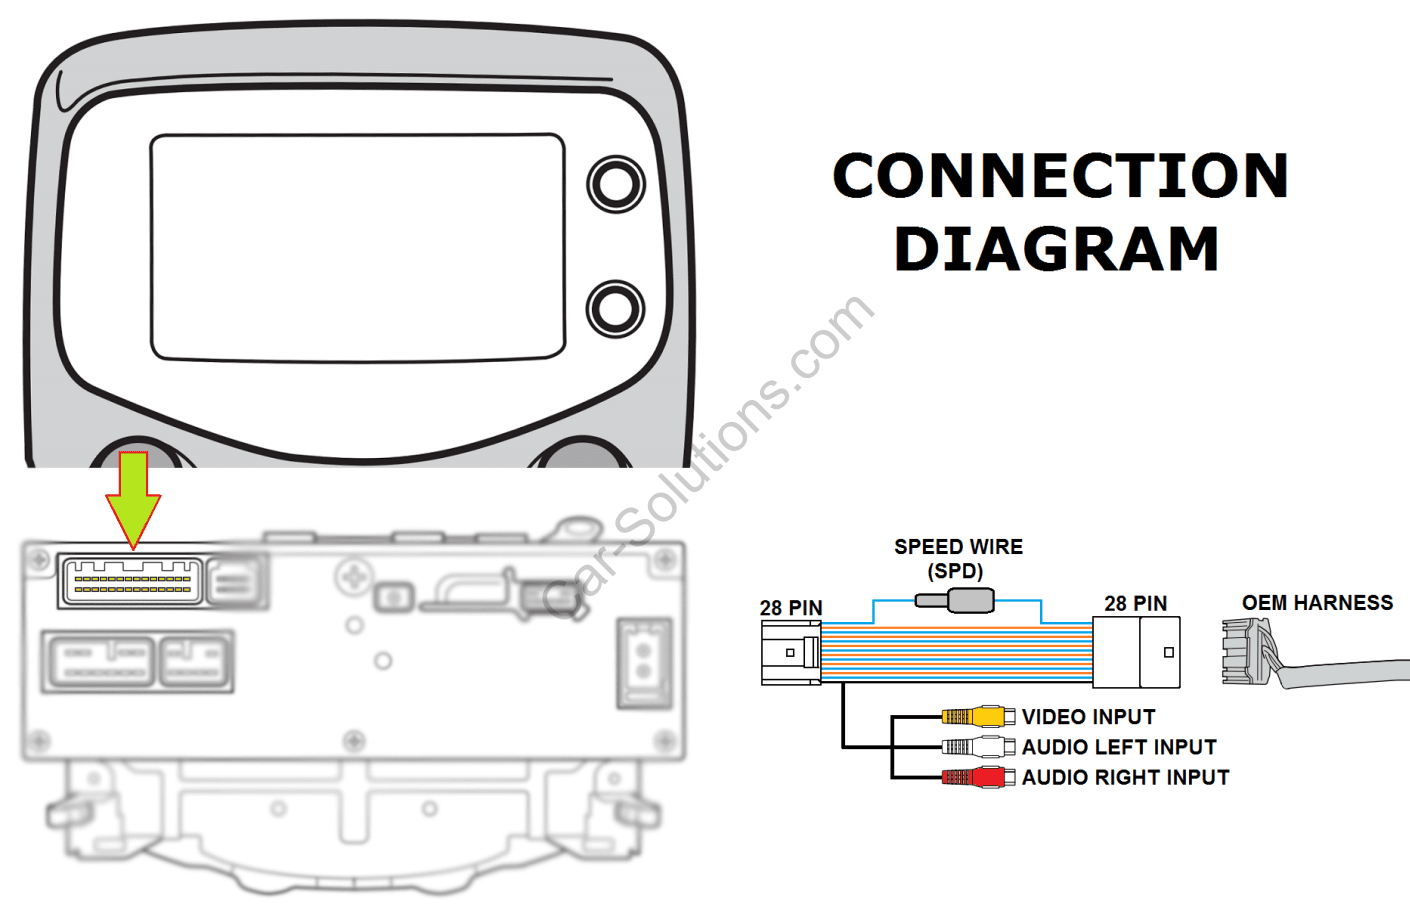 connection wiring diagram ford cortina wiper motor for cable box to tv dvd cox vcr